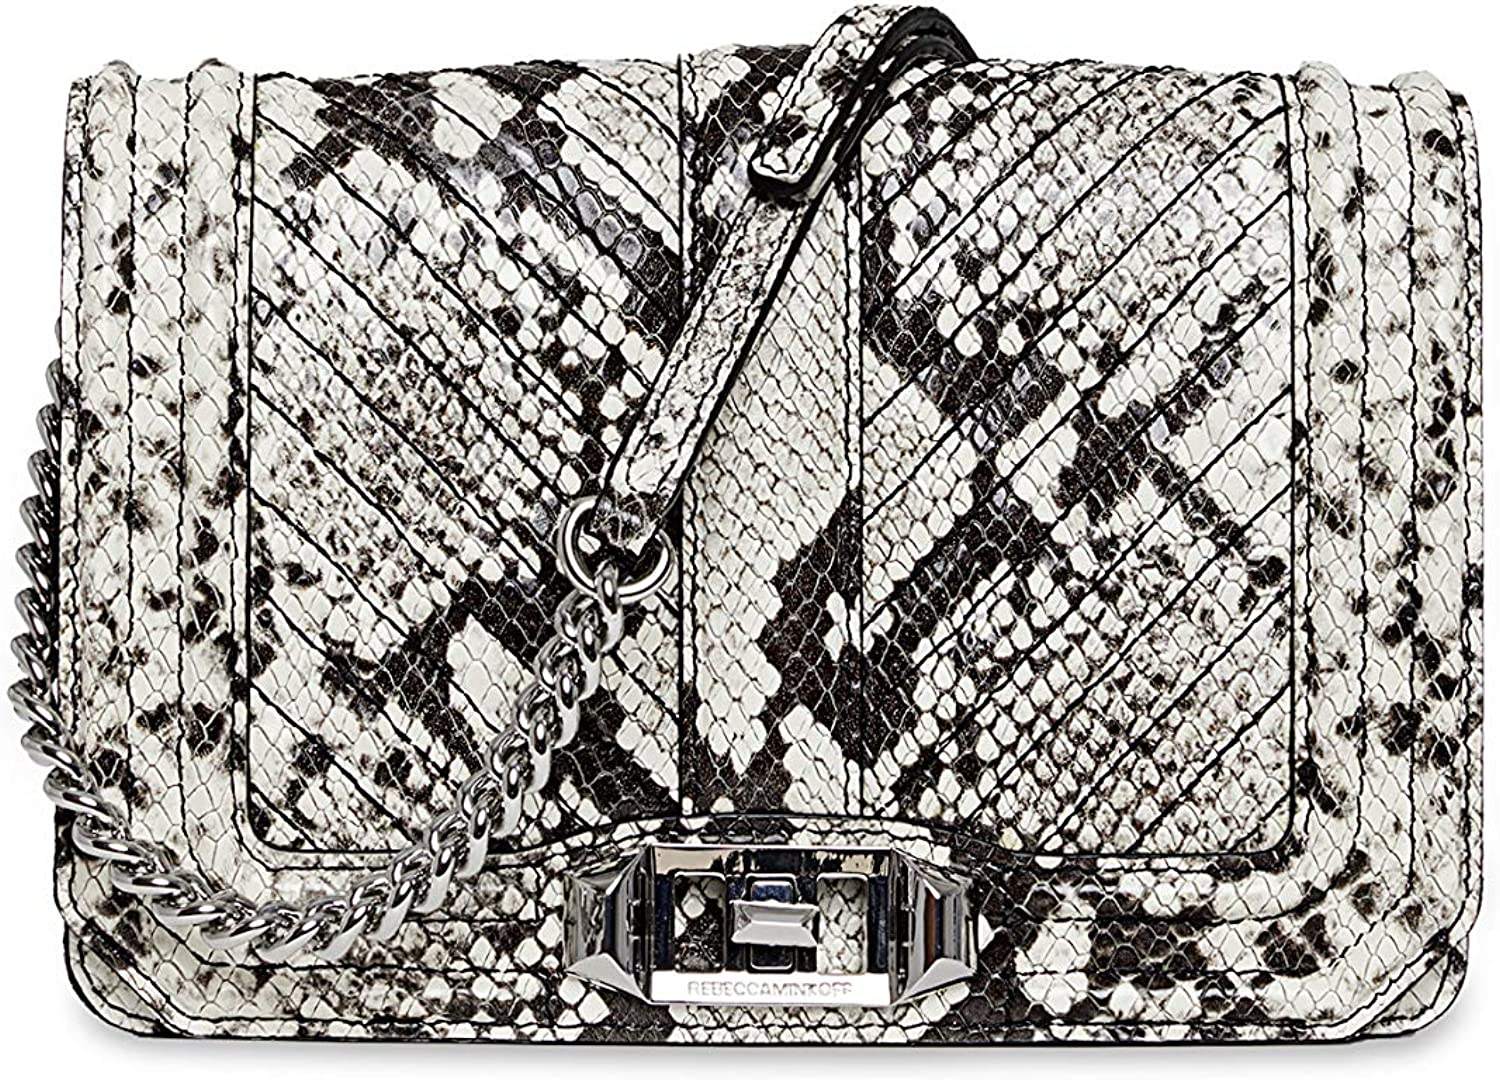 safety All items in the store Rebecca Minkoff Women's Chevron Quilted Bag Cross Body Small